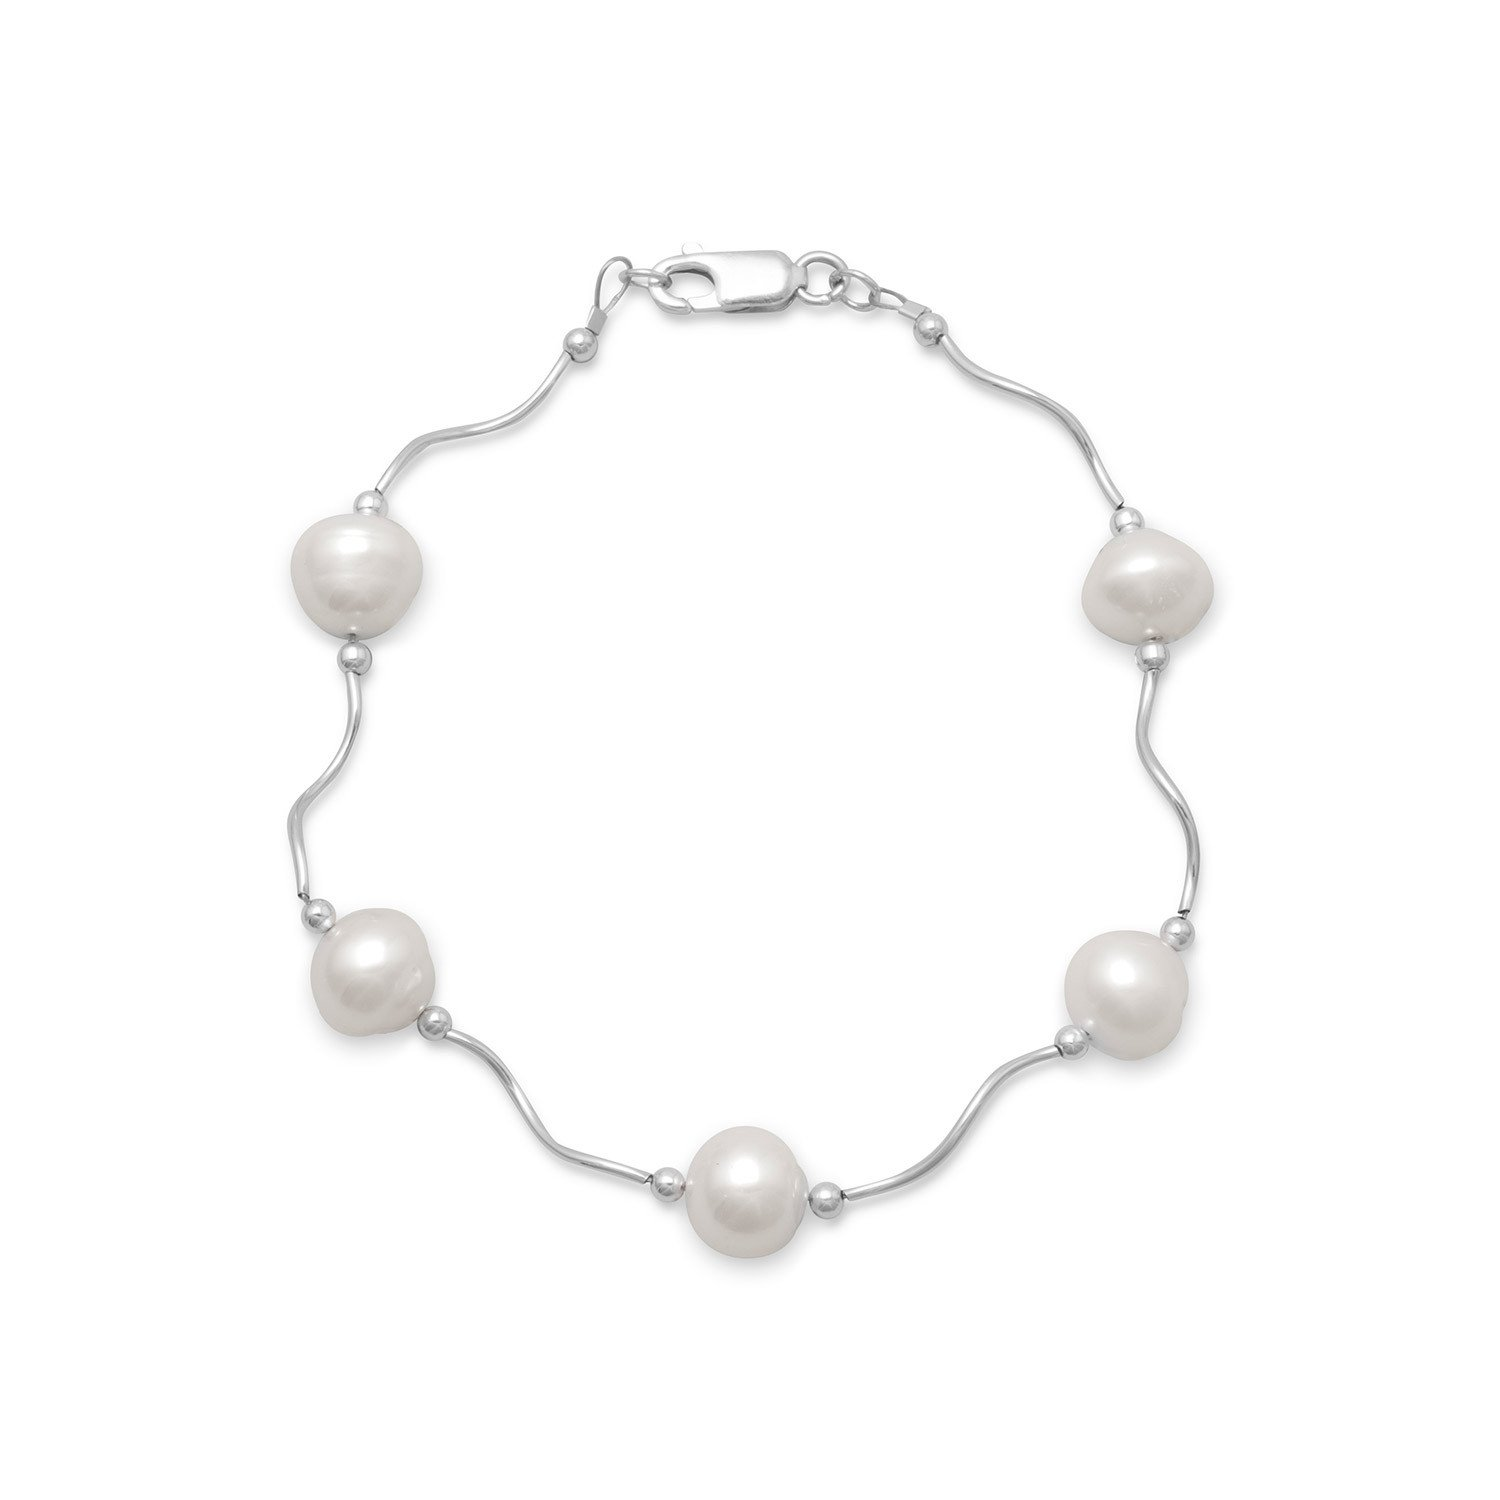 8″ Wave Design Bracelet with Cultured Freshwater Pearls